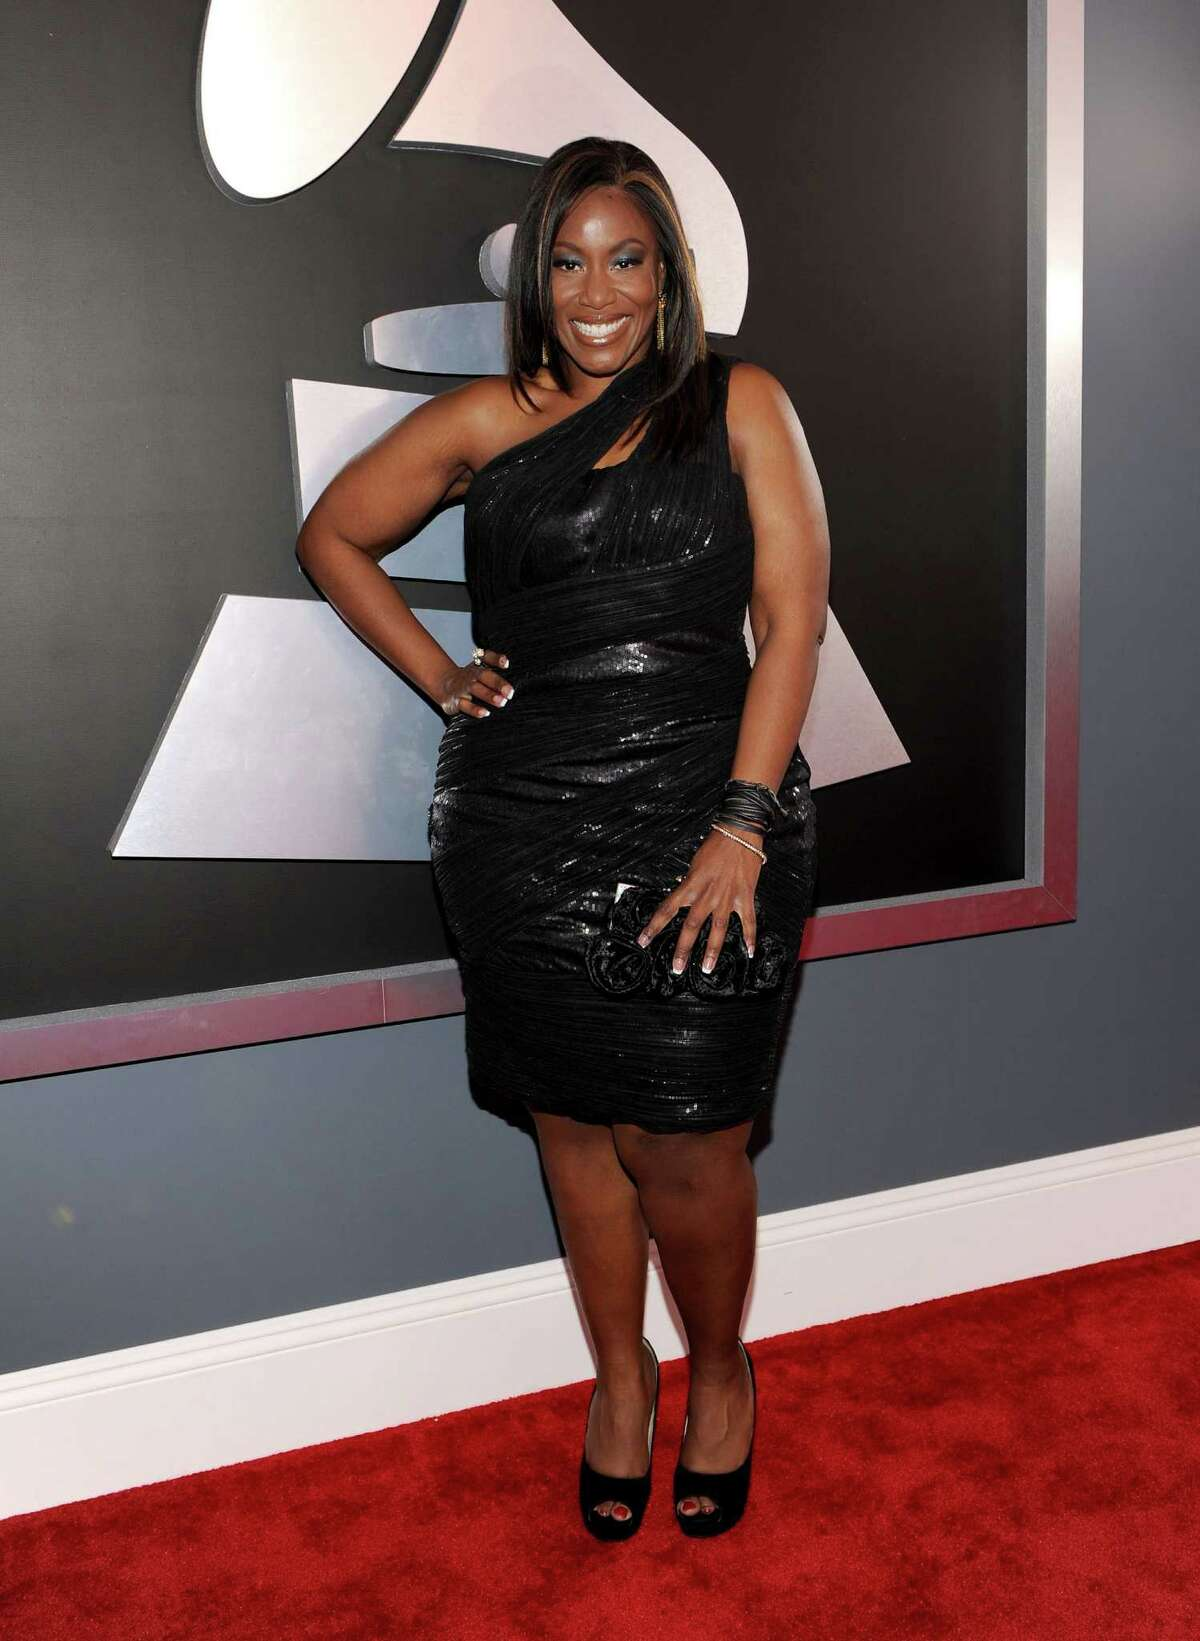 LOS ANGELES, CA - FEBRUARY 12: Singer Mandisa arrives at the 54th Annual GRAMMY Awards held at Staples Center on February 12, 2012 in Los Angeles, California. (Photo by Larry Busacca/Getty Images For The Recording Academy)